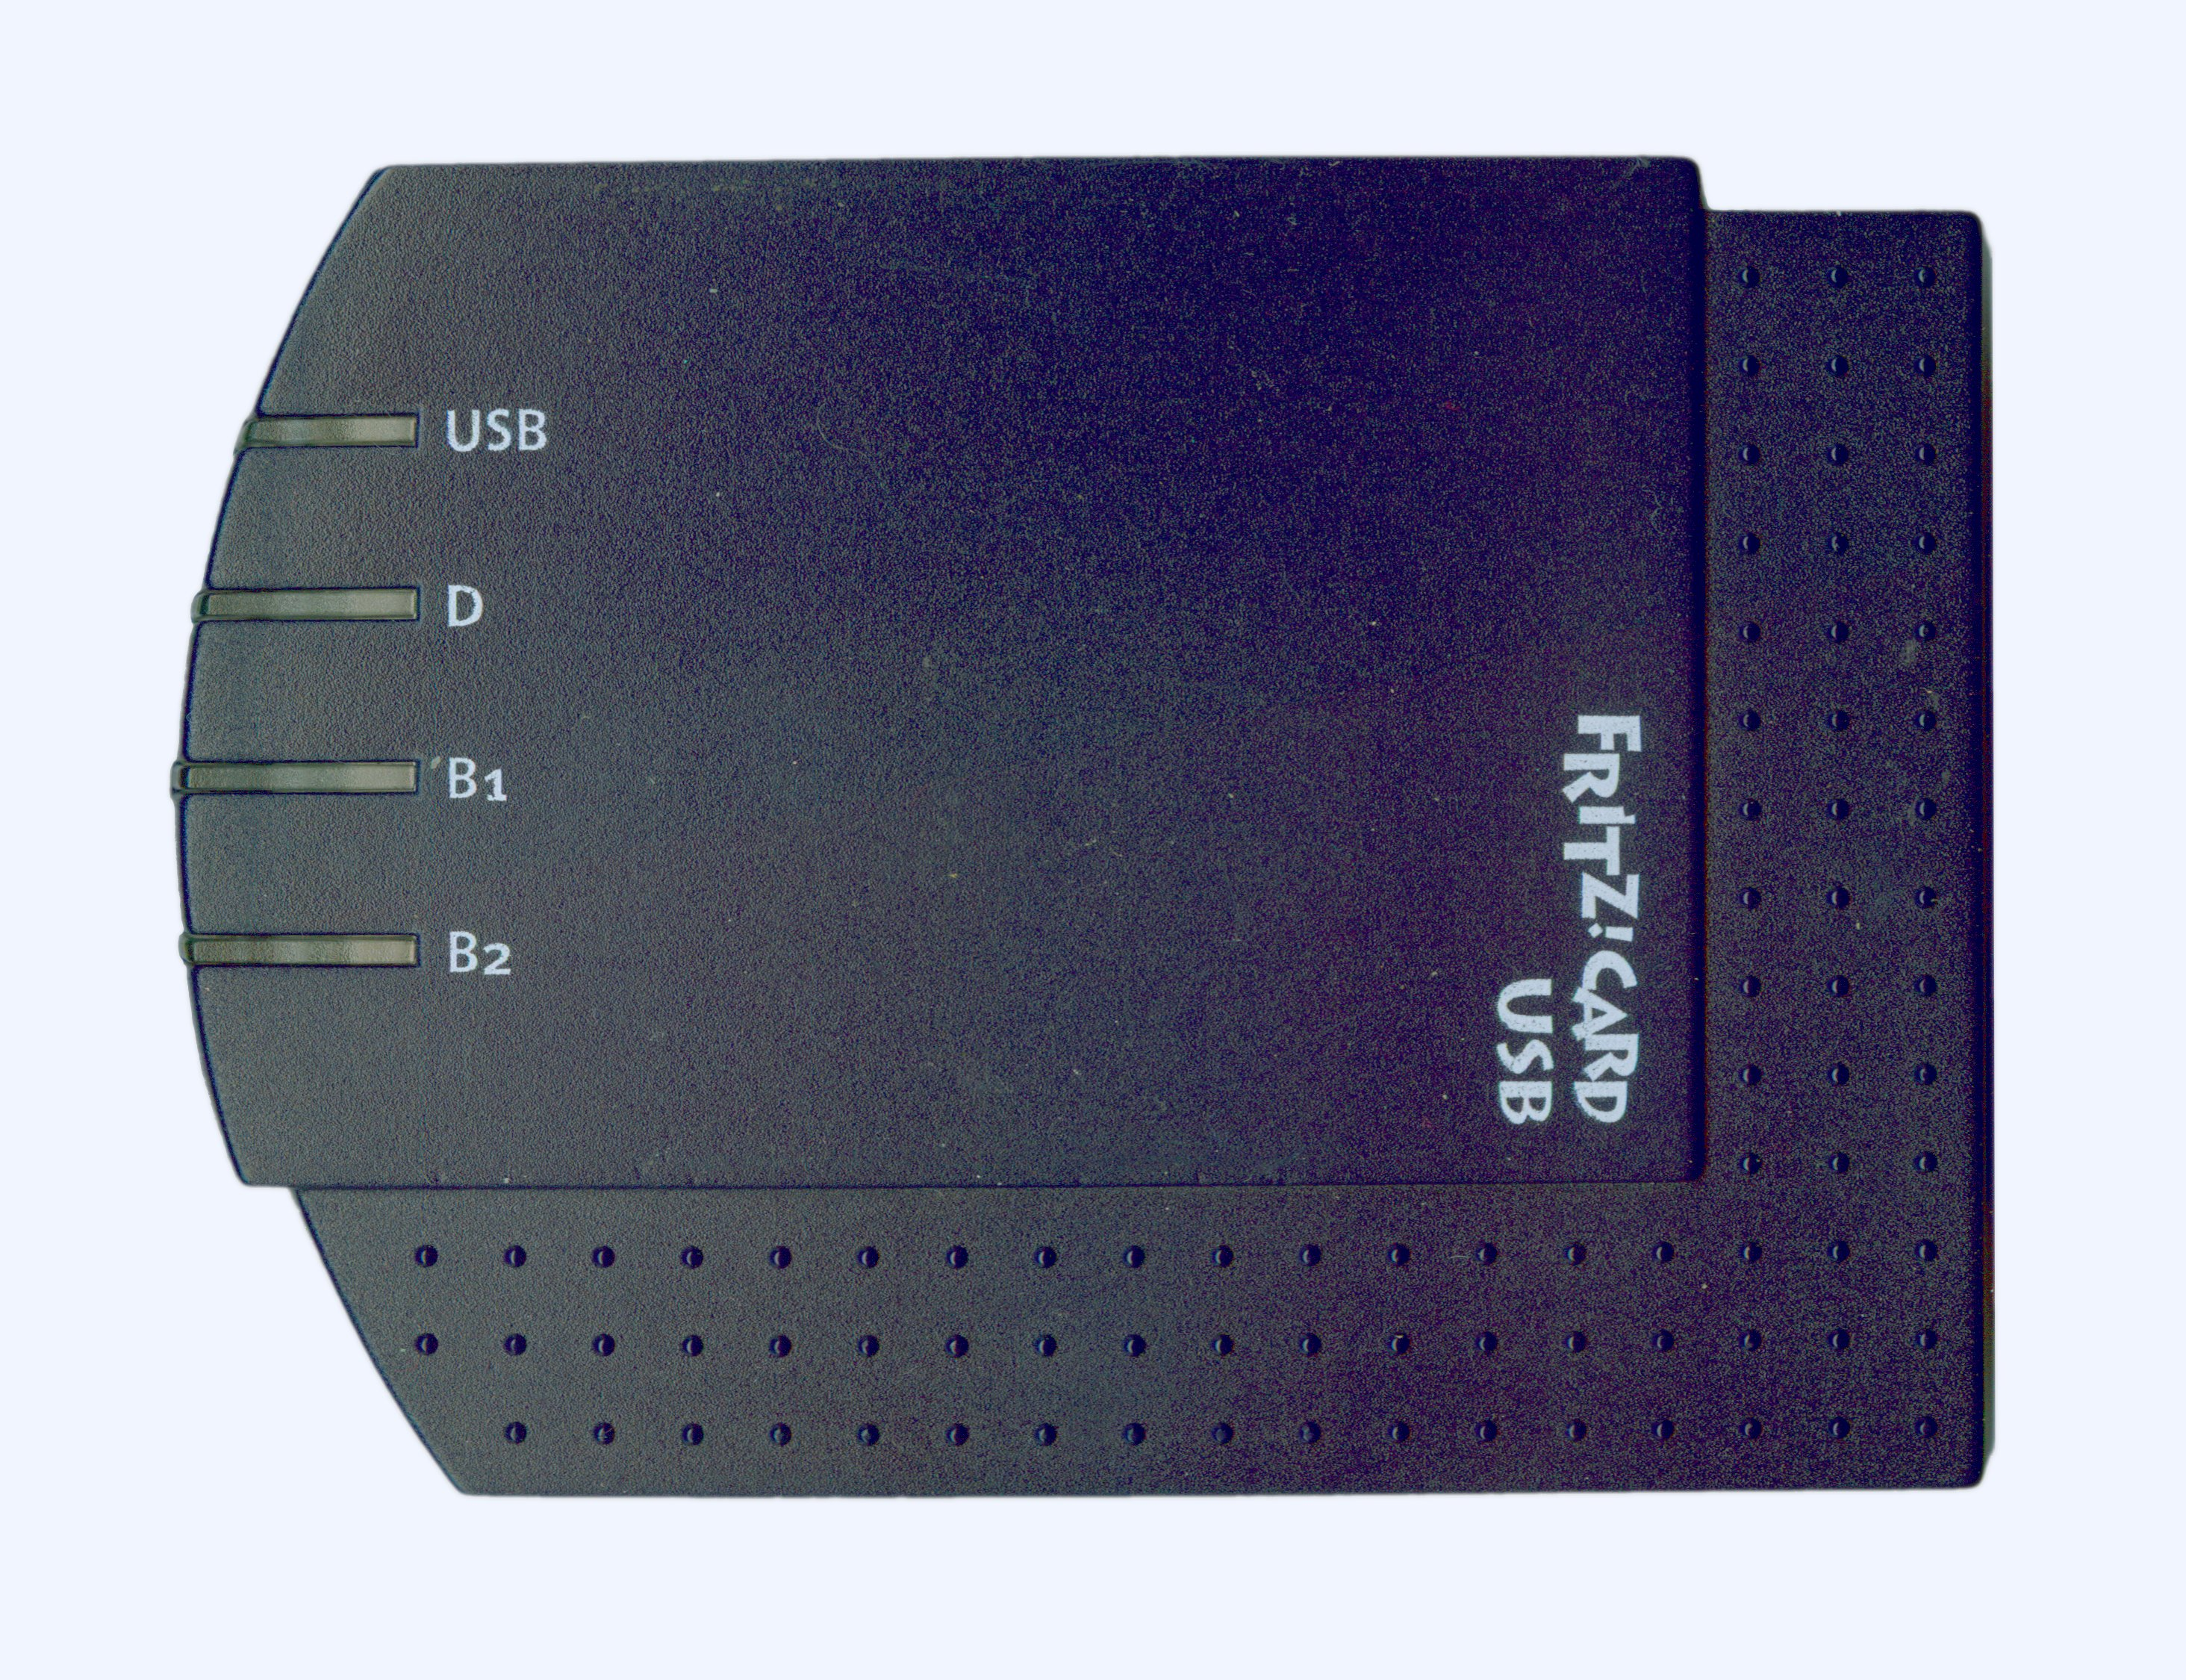 AVM ISDN B1 USB Drivers Windows